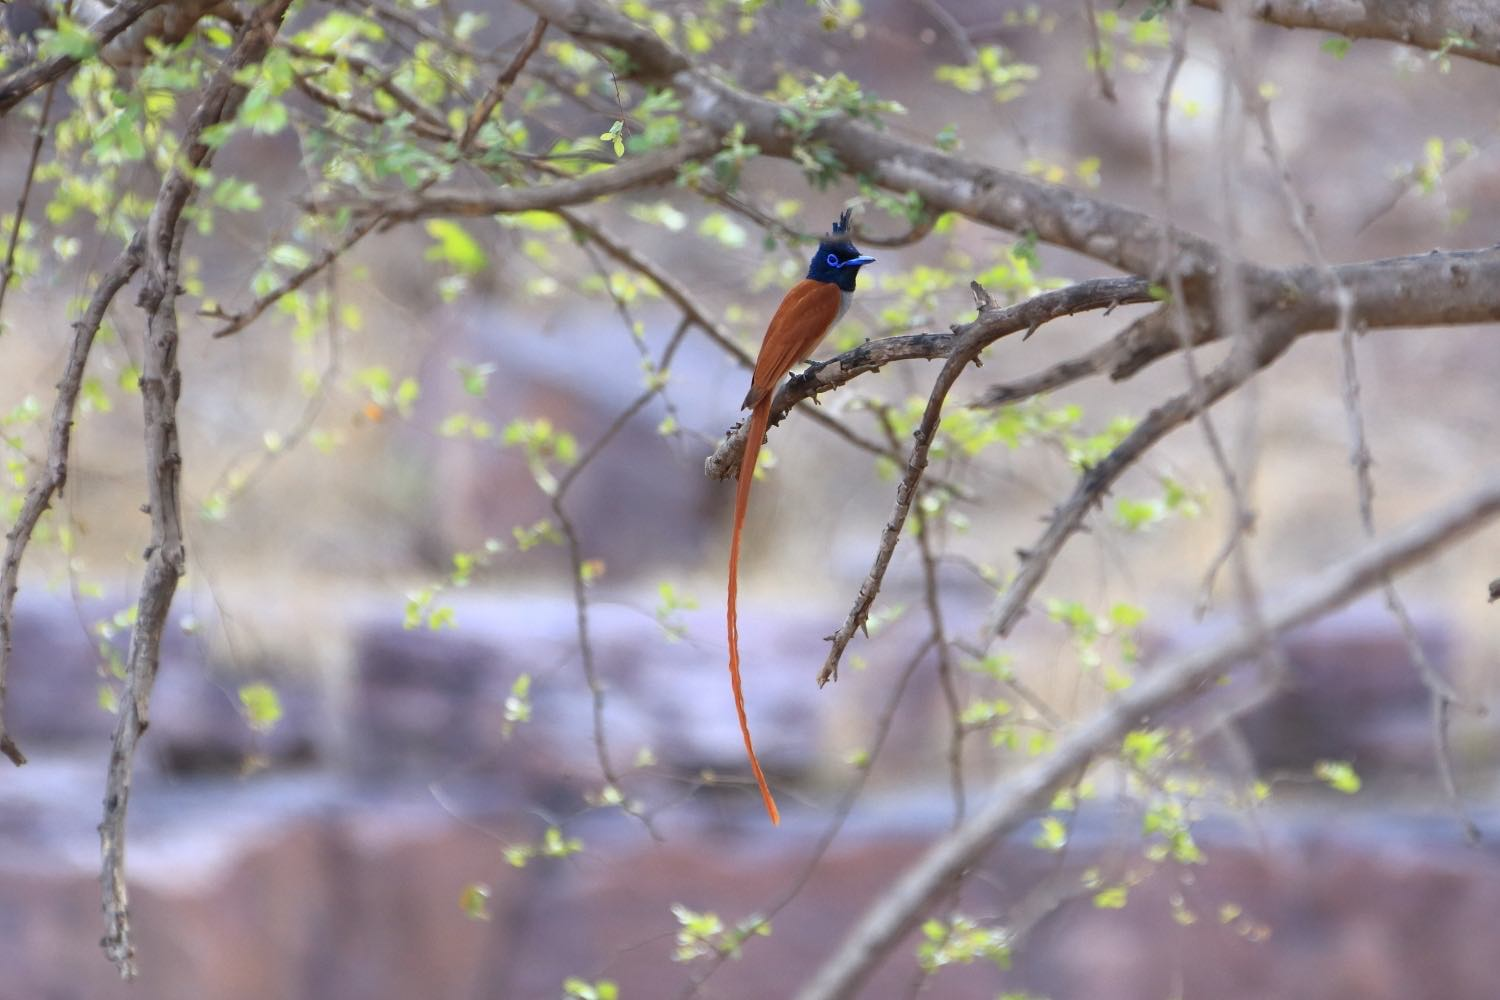 Asian Paradise Flycatcher bird!    Ranthambore National Park, India. 09 May 2013. 1/320 s, f/6.3,ISO 1000, 300 mm, EOS 6D + EF 28-300 L